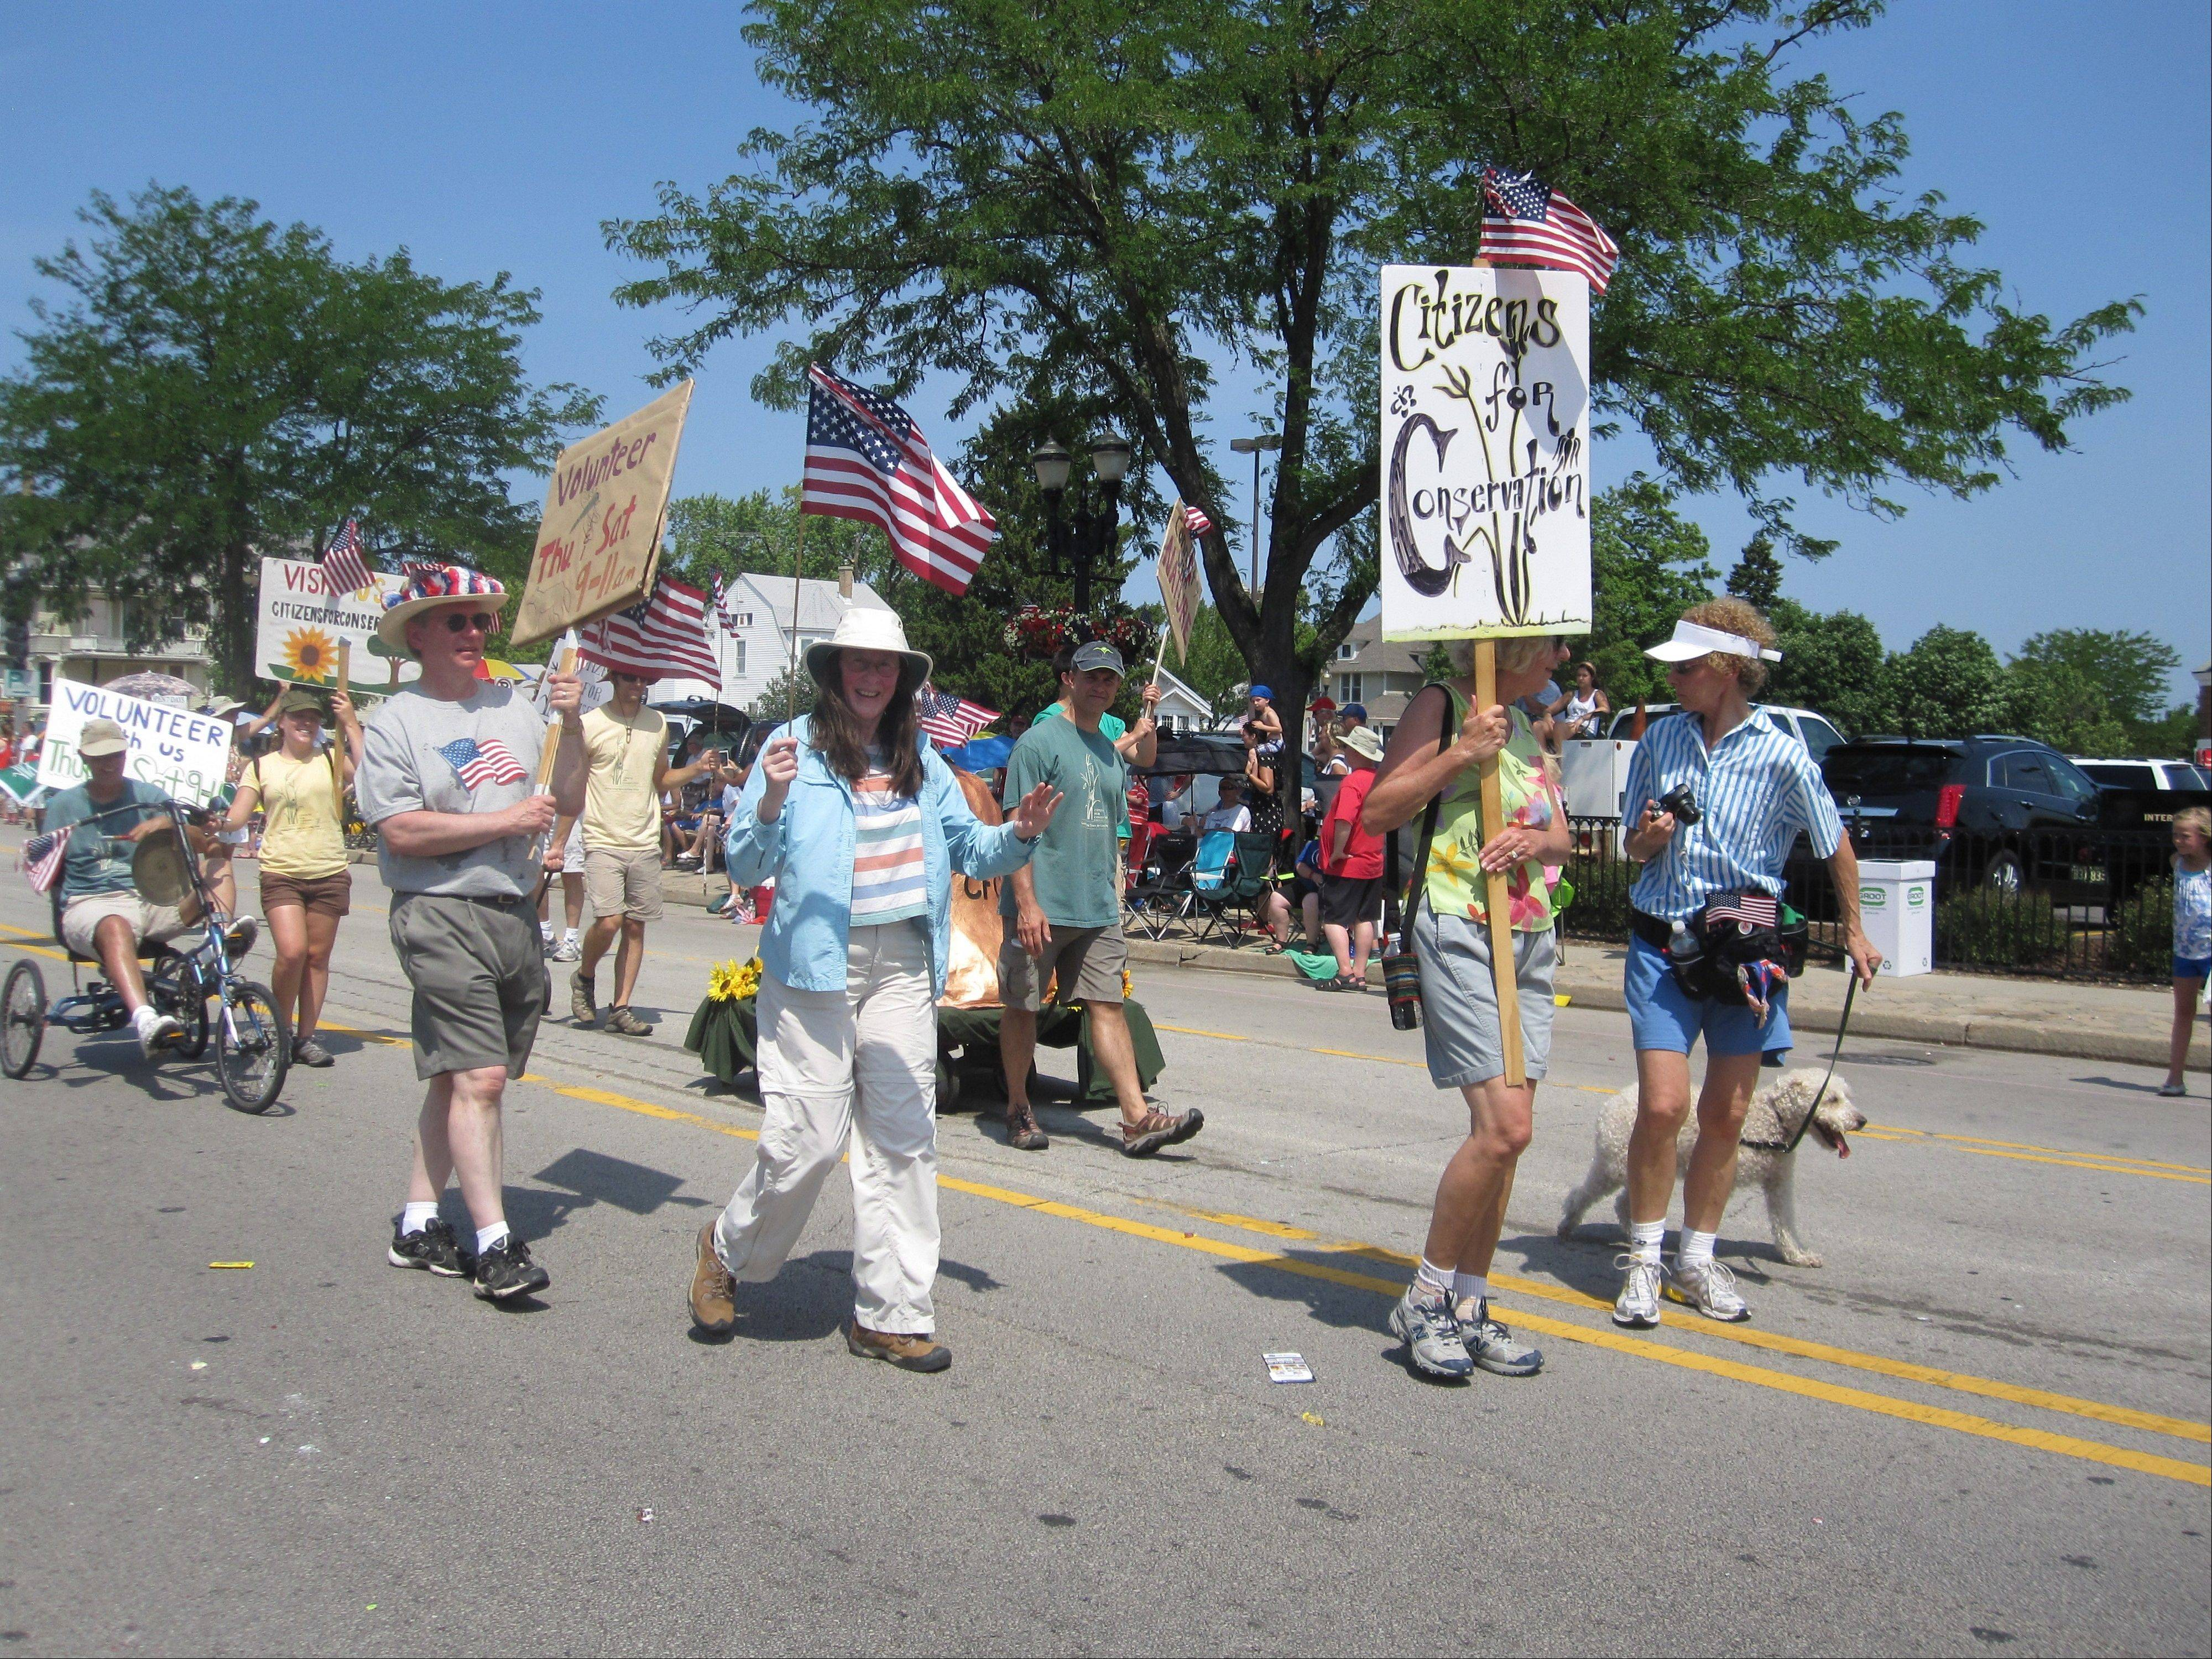 Citizens for Conservation members walk in the 2012 Barrington 4th of July parade, winners of the Village President's Award.